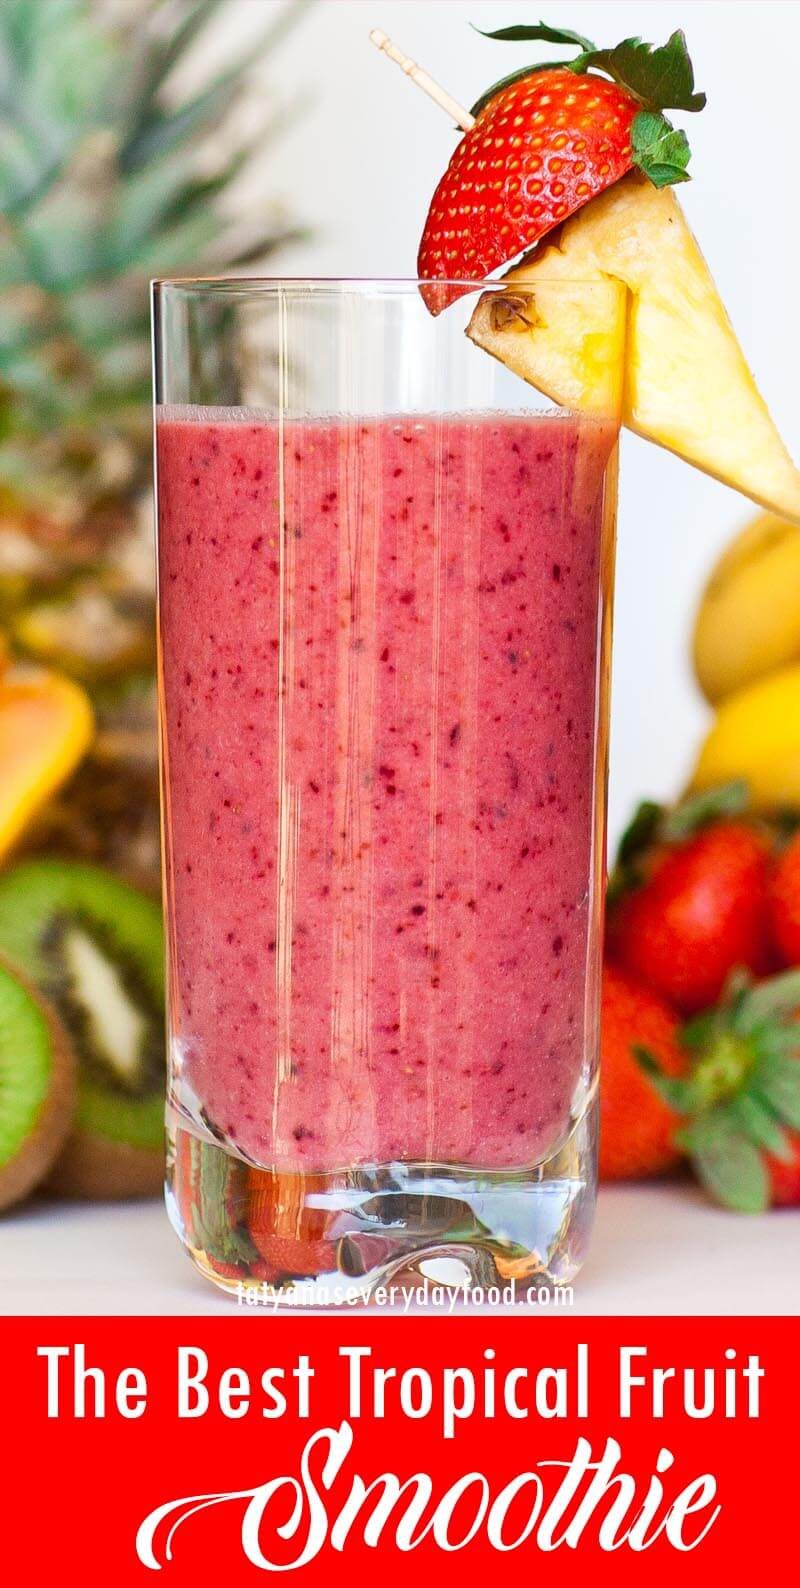 The Best Tropical Fruit Smoothie video recipe